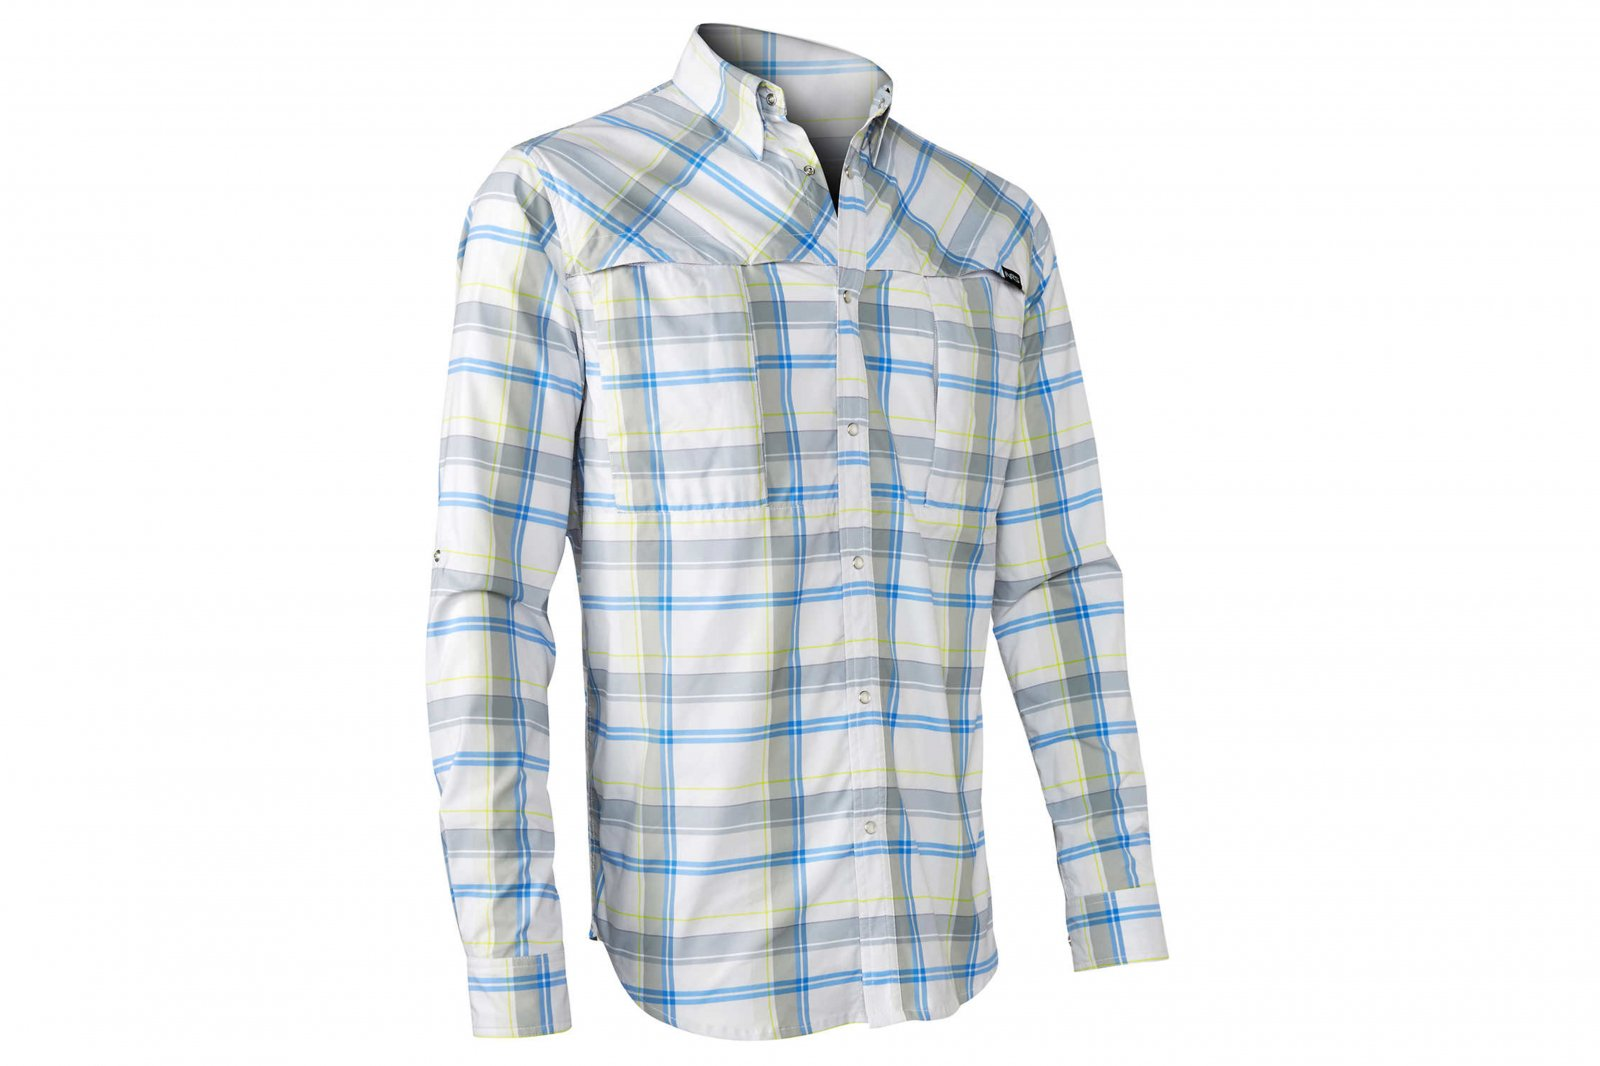 <img class='new_mark_img1' src='https://img.shop-pro.jp/img/new/icons5.gif' style='border:none;display:inline;margin:0px;padding:0px;width:auto;' />NRS Vermillion Shirt S Plaid